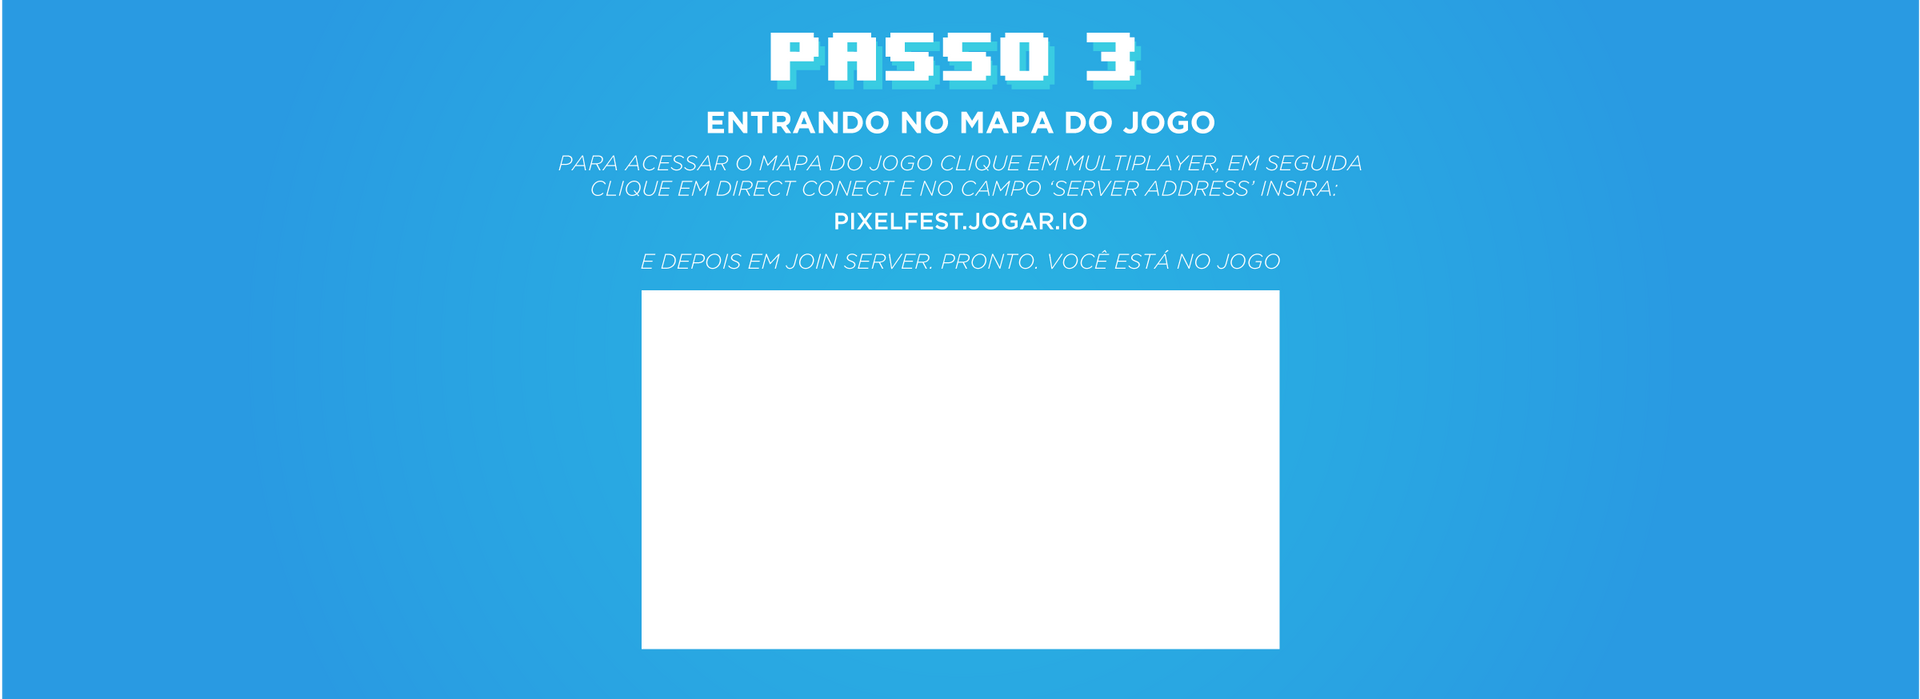 passo-3.png